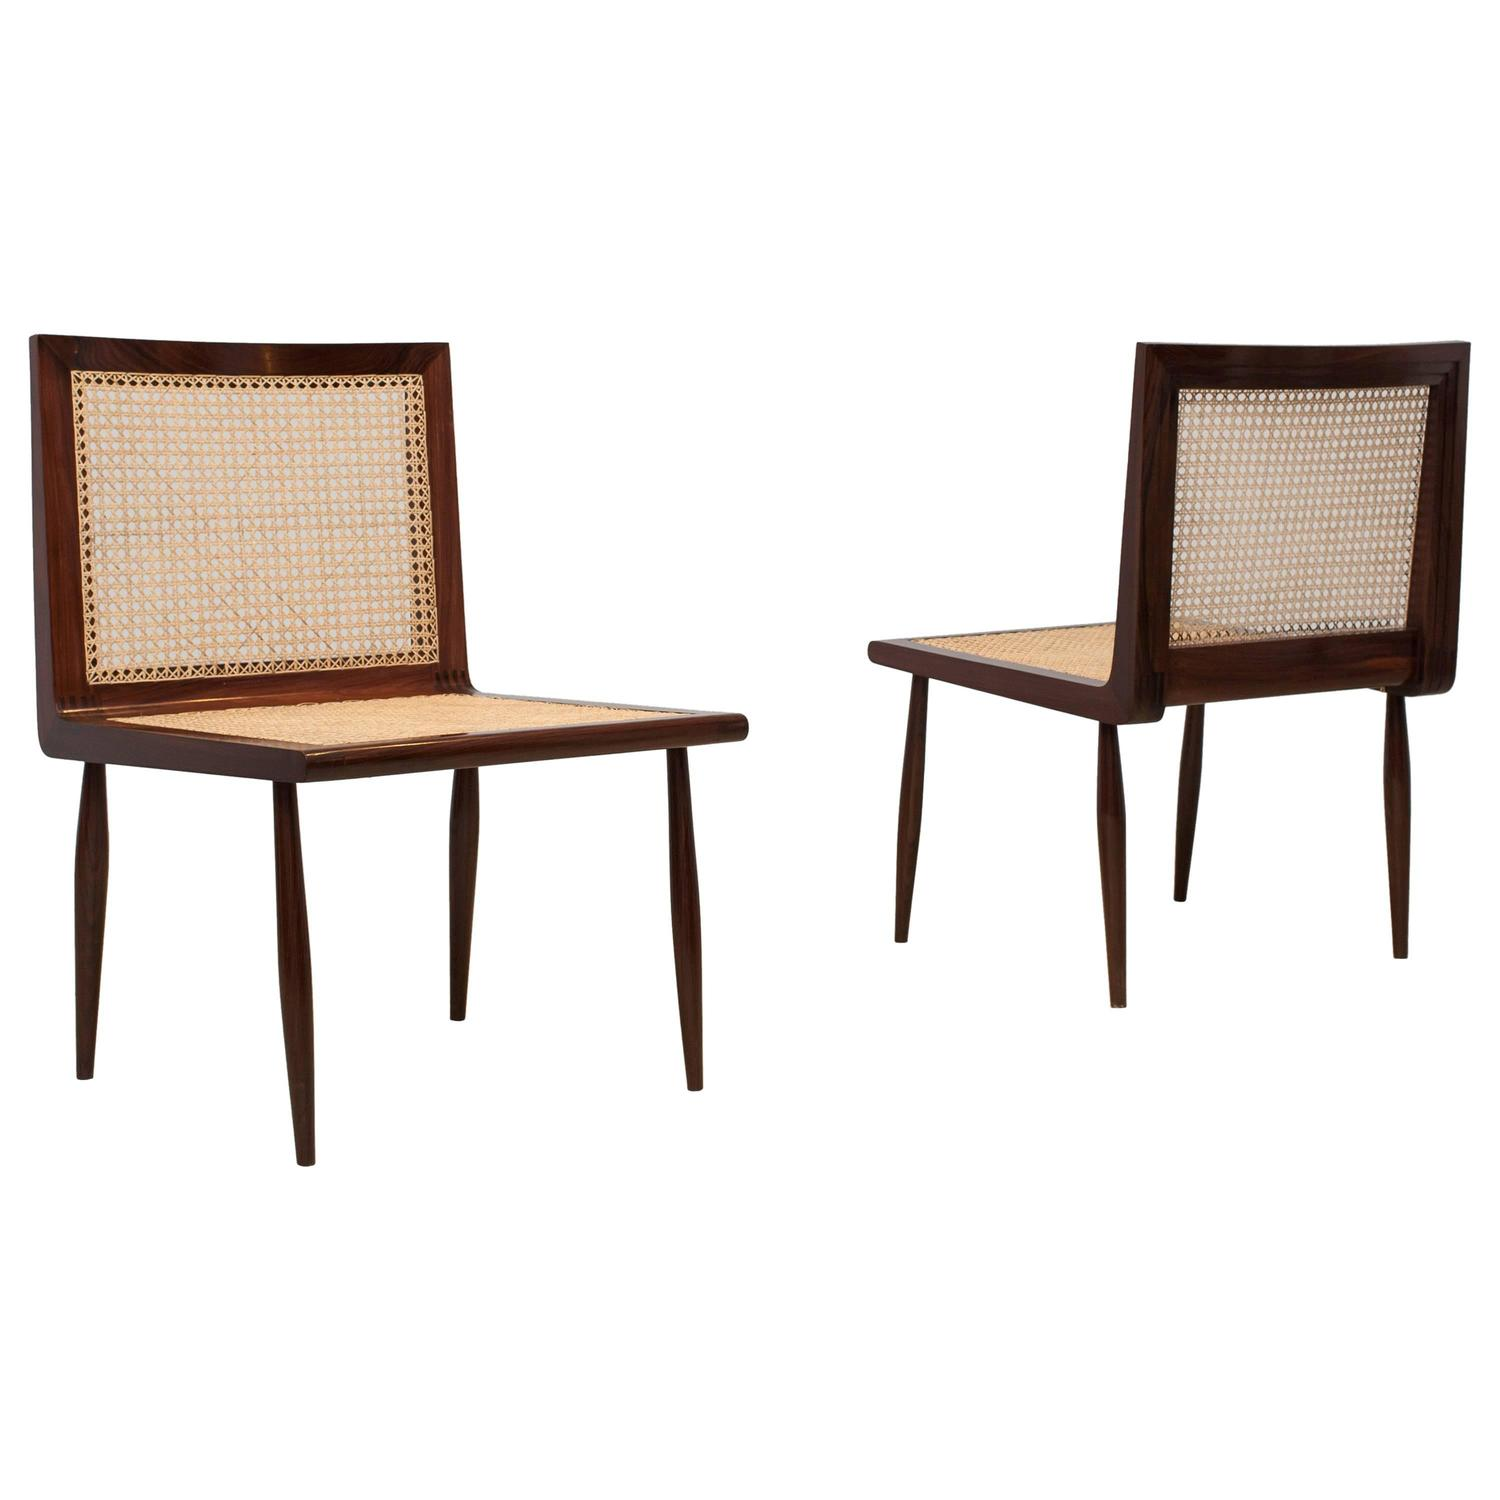 joaquim tenreiro low bedroom chairs circa 1950 for sale at 1stdibs